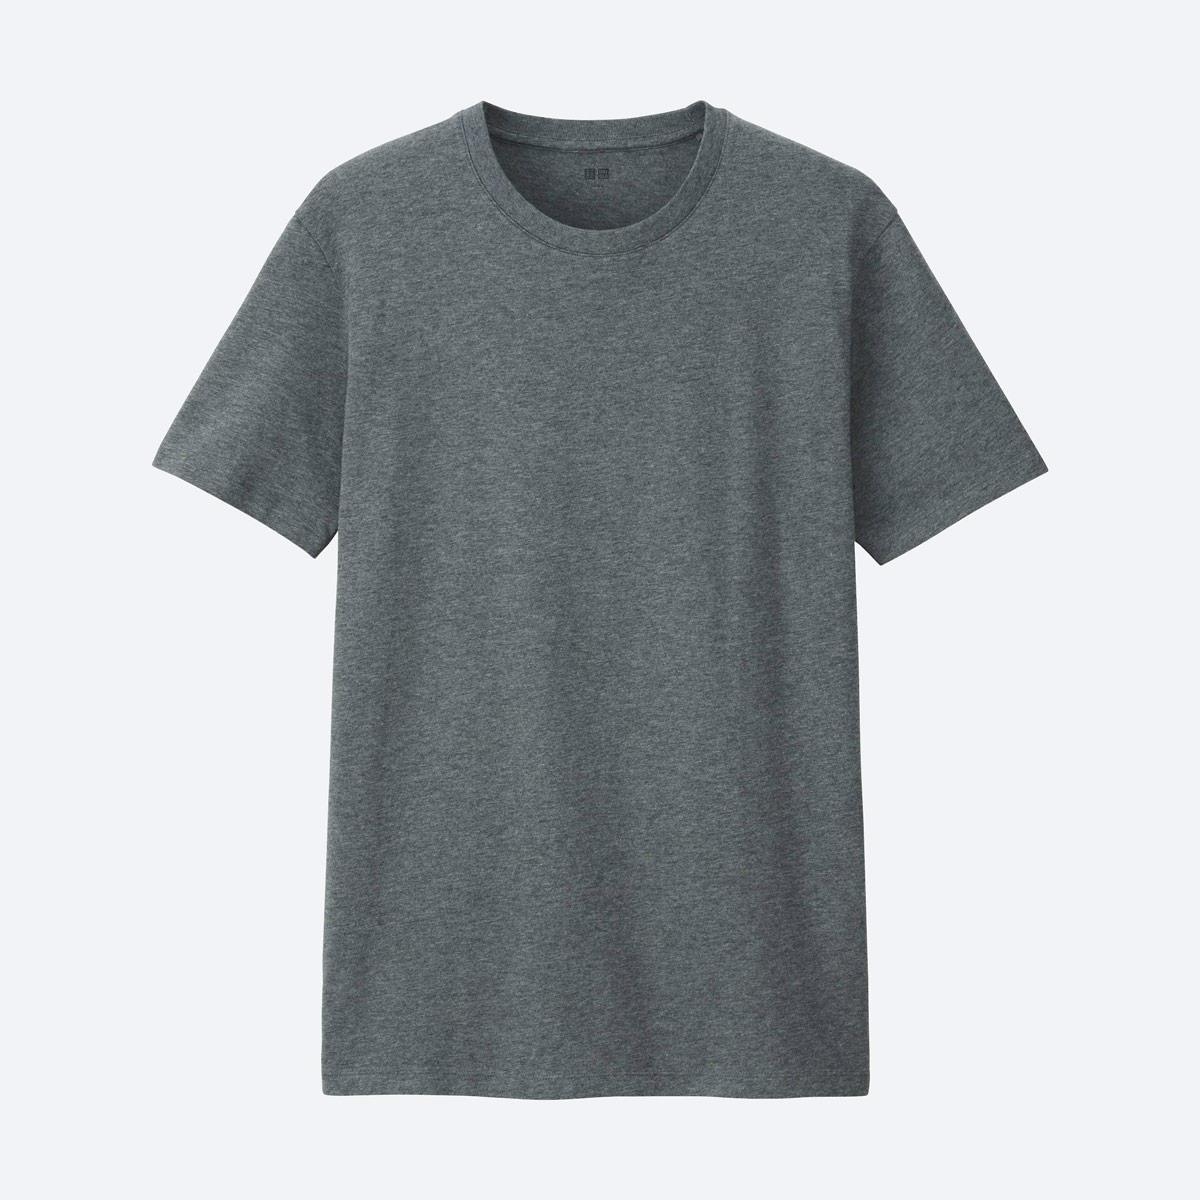 Uniqlo Supima Cotton Crew Neck T-Shirt